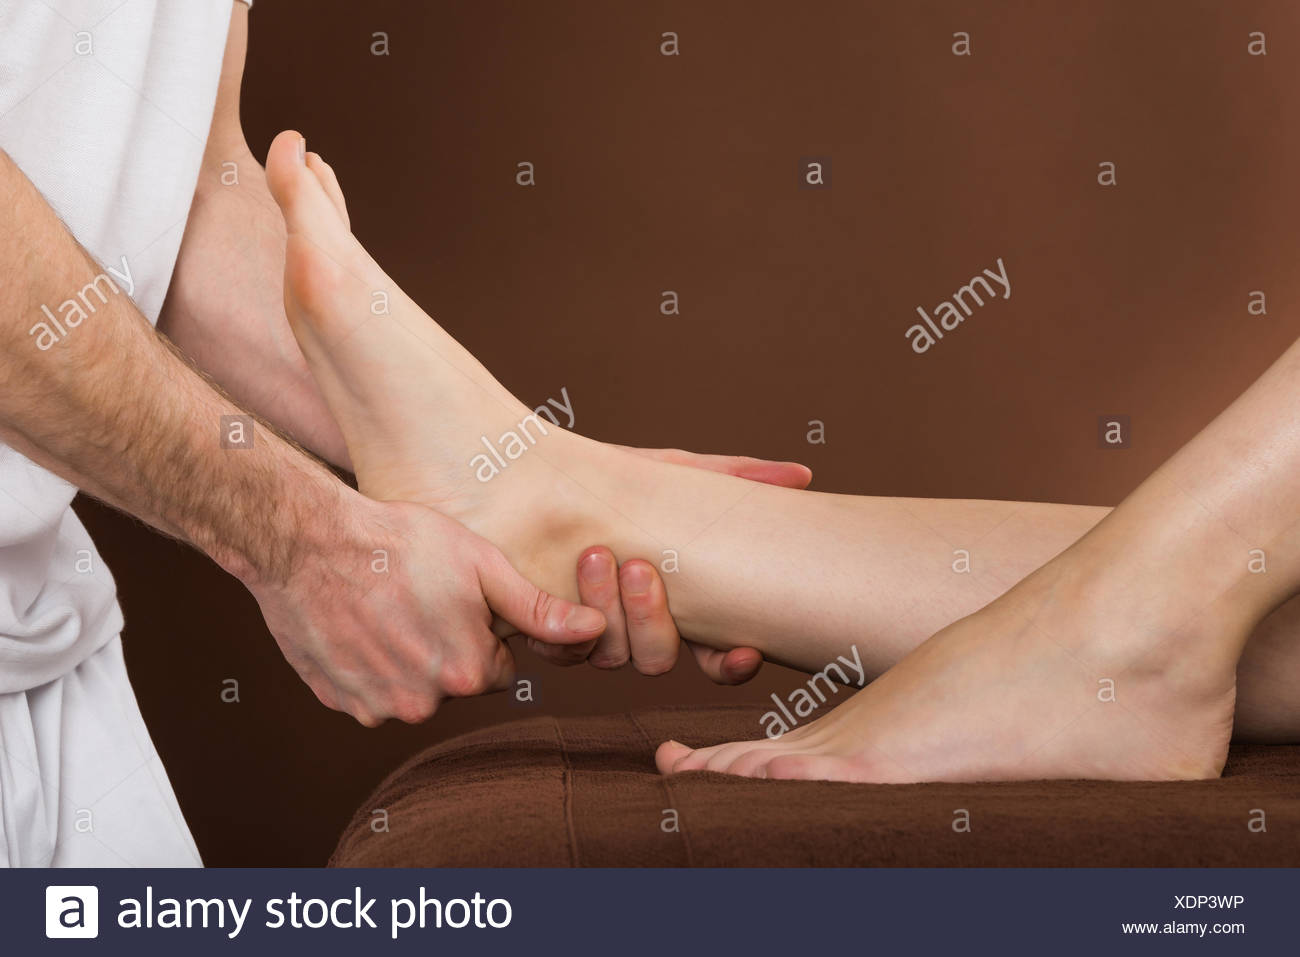 Woman Receiving Foot Massage At Spa - Stock Image